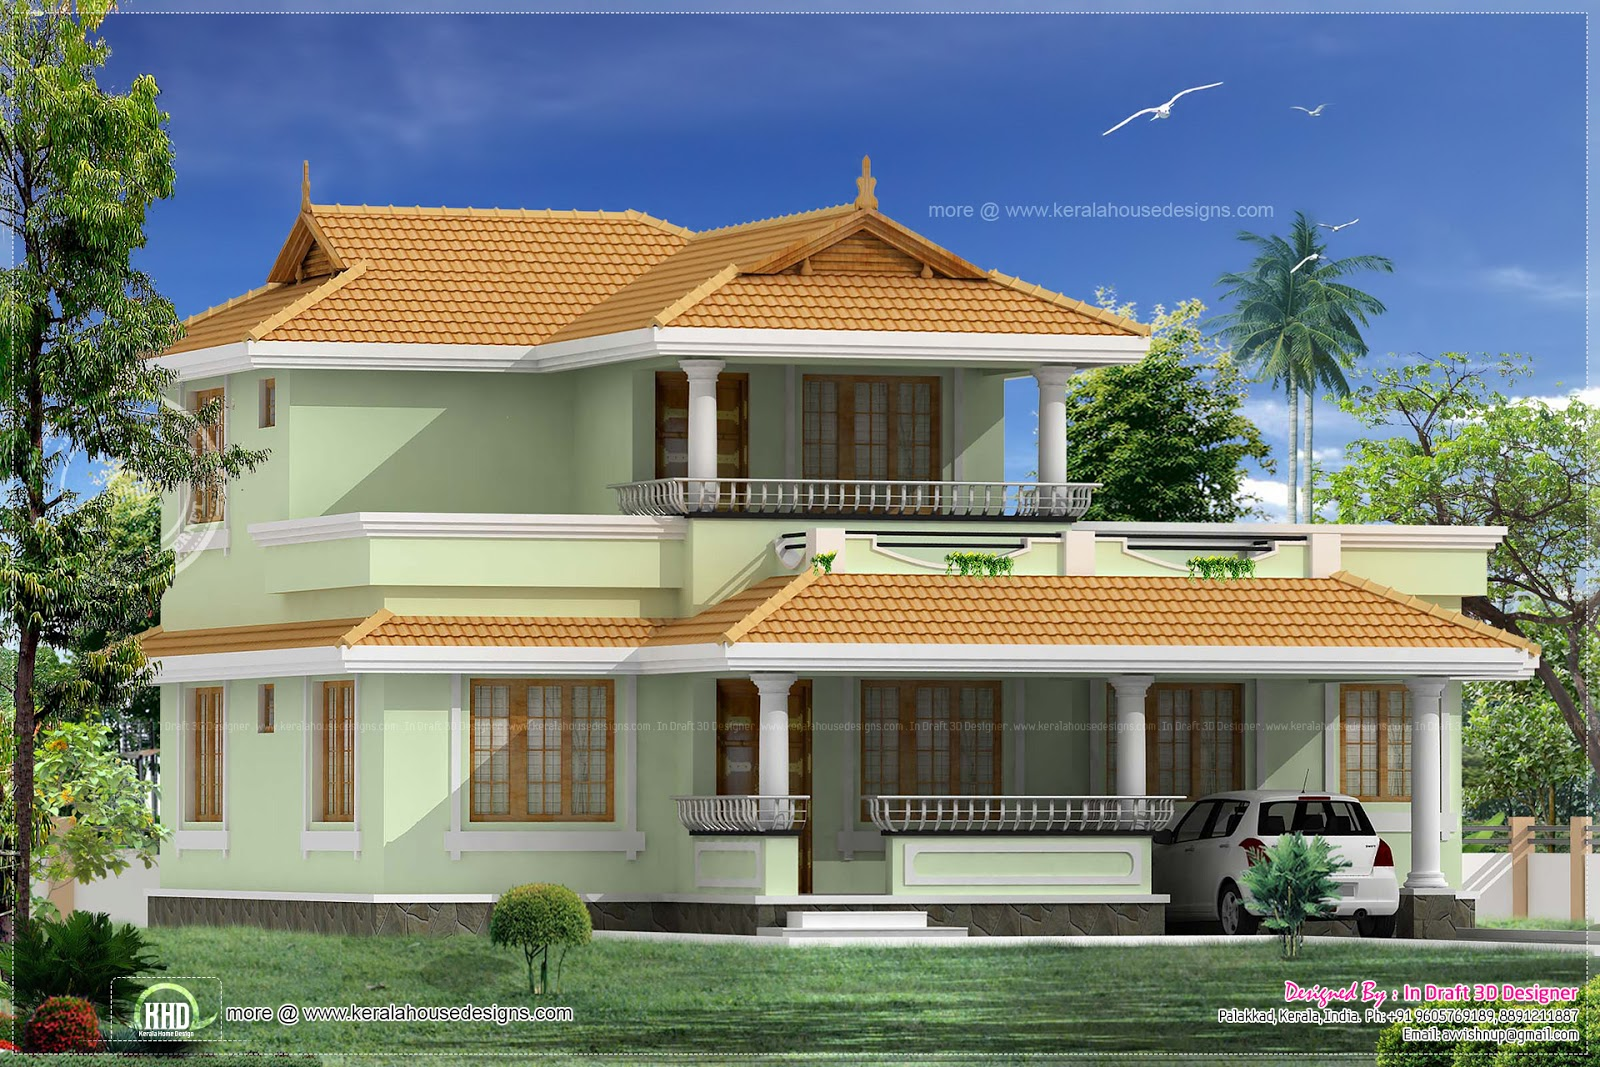 3 bed room kerala traditional villa in 1754 sqft house for Kerala traditional home plans with photos